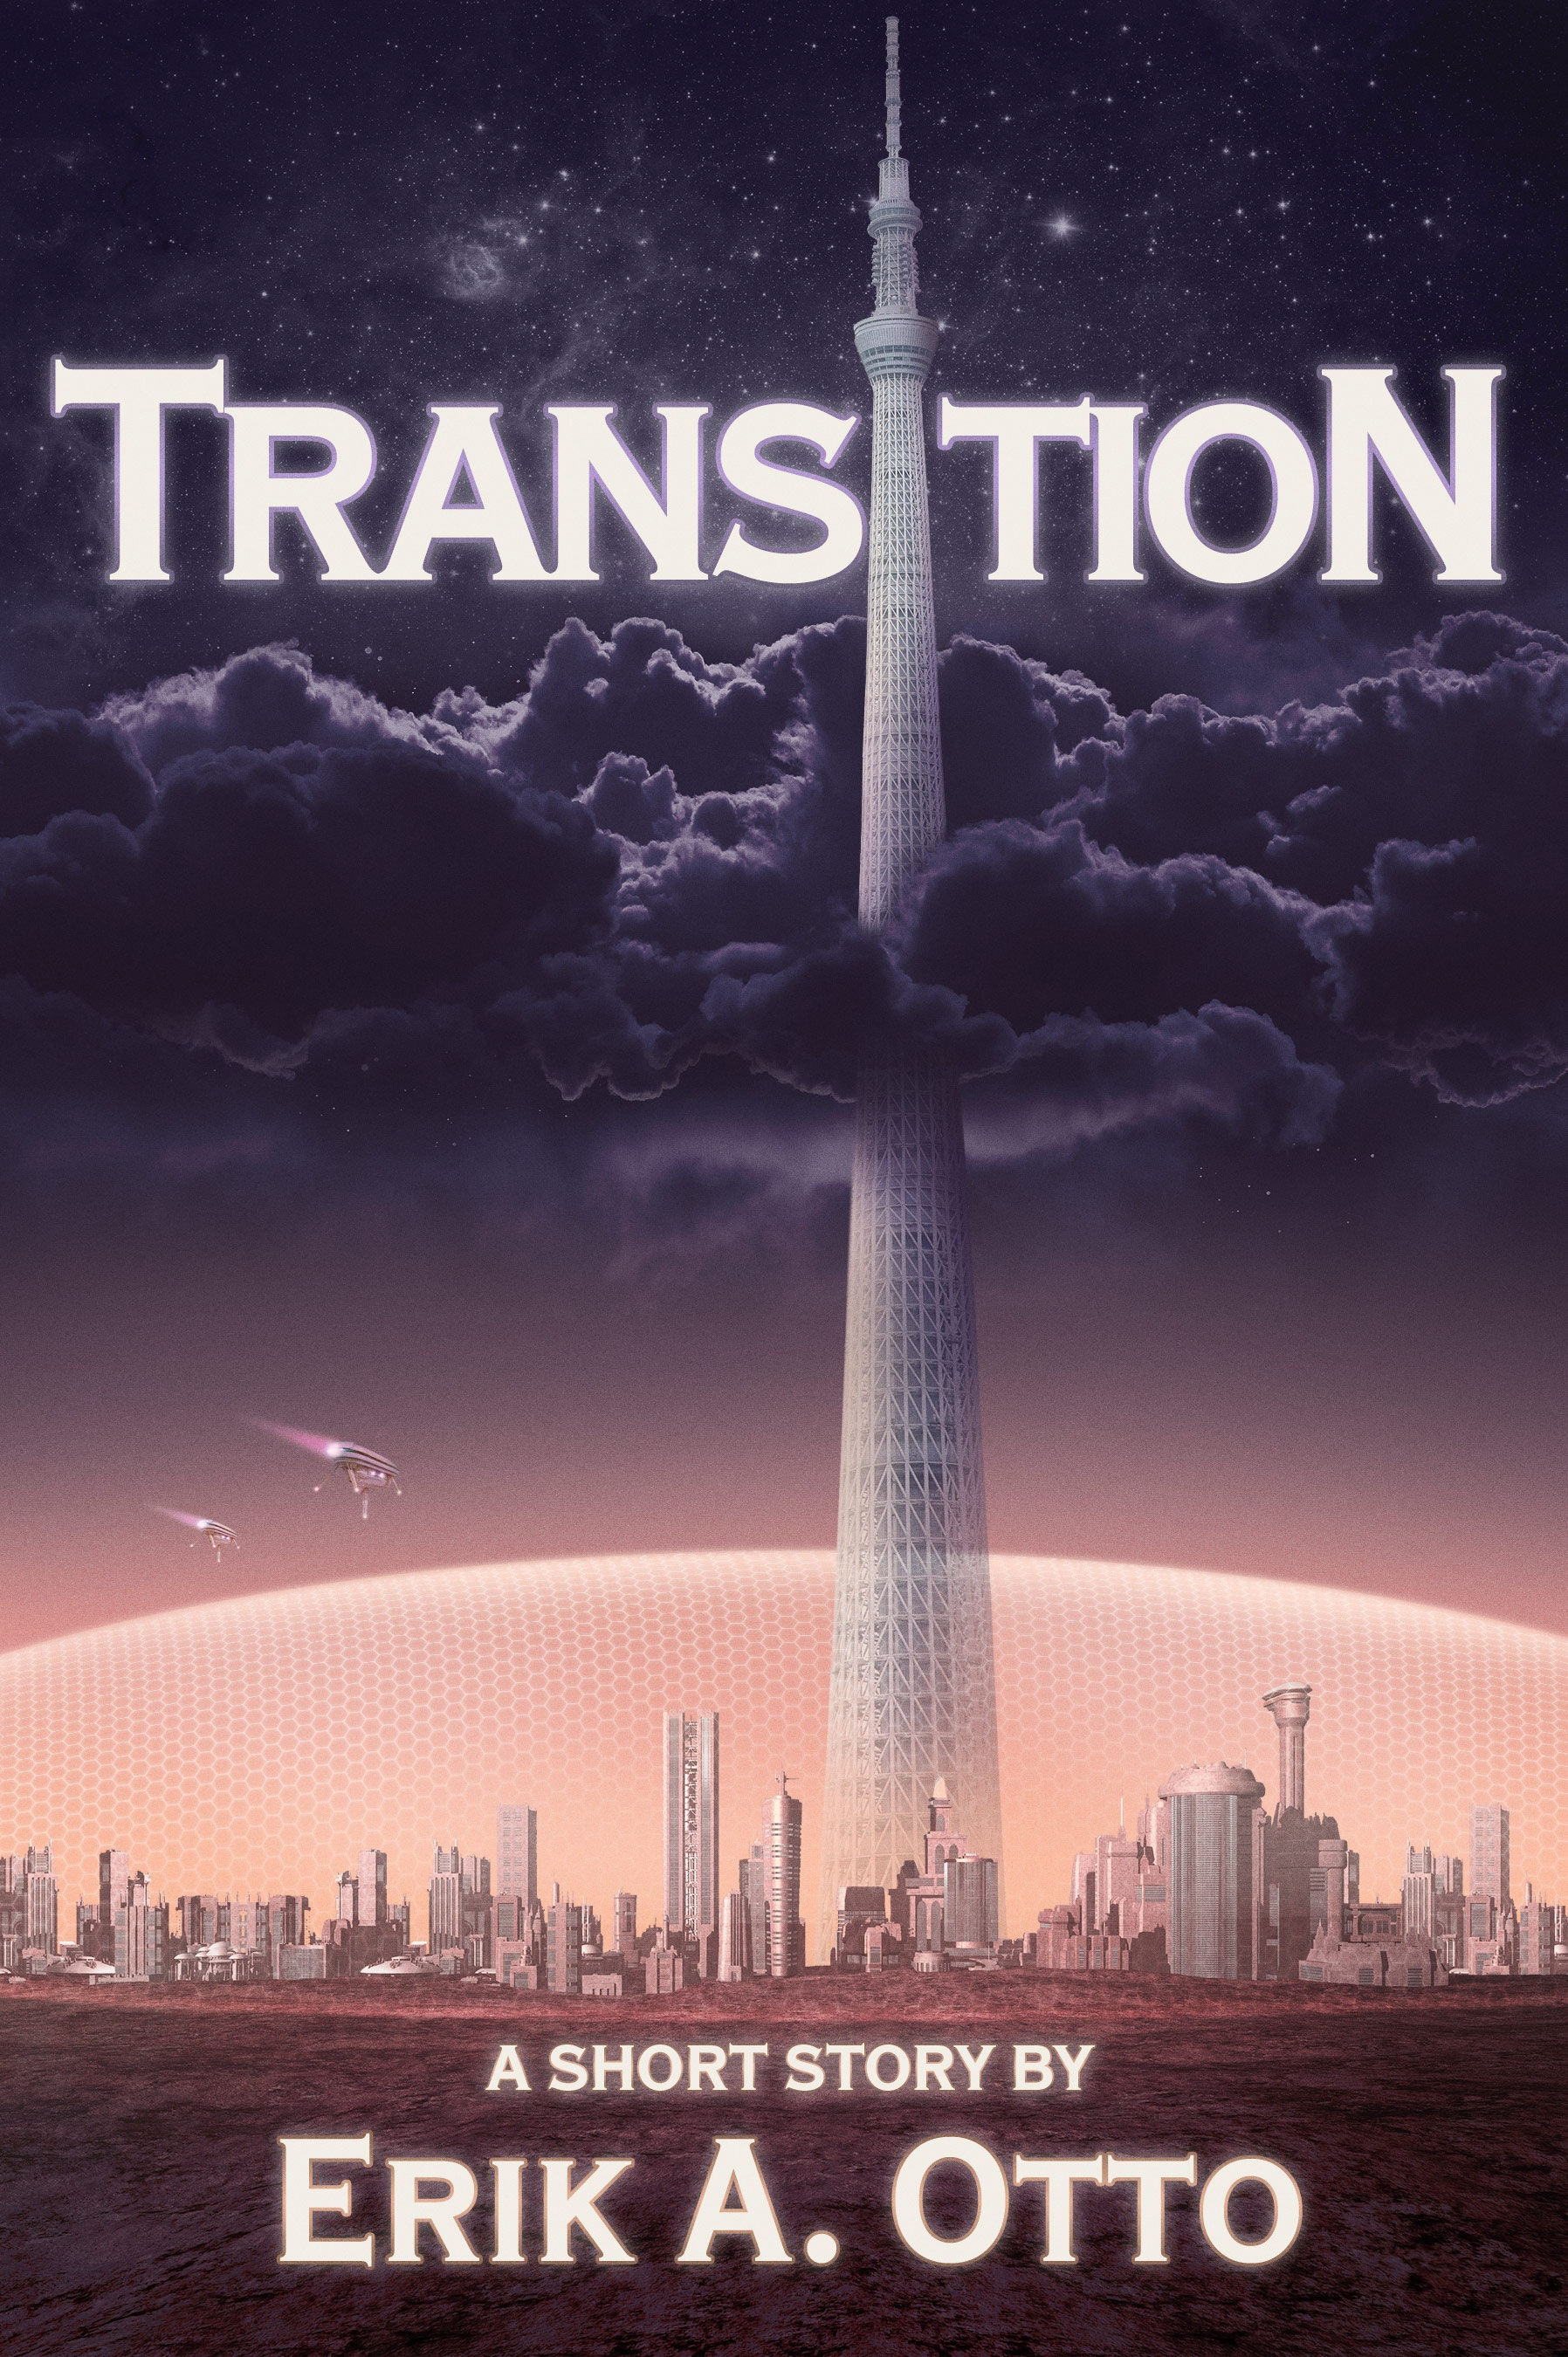 Transition - A 16,000 word science fiction short story set in an enclosed city that is besieged by an endless war. It follows Alder and Lena, who both want a family. Their only option is to have lacrotic children; precious gifts that come with an expiry date. They struggle to maintain hope and dream of escaping to the stars as the transition looms ever closer.AND COMING SOONThe Reformer is a 3,000 word short story set in the distant future on a world filled with diamond towers, dirigibles and harsh climate shifts. The sister of a planetary defense agent has been murdered, and the evidence is overwhelming. But the sentencing is unusual, because the punishment must fit the crime.Proliferation is the working title for the sequel to Detonation. It's too early to give it a blurb, but I am hard at work on it thanks in large part to the encouraging response to Detonation. Thank you! Look for it in 2020.